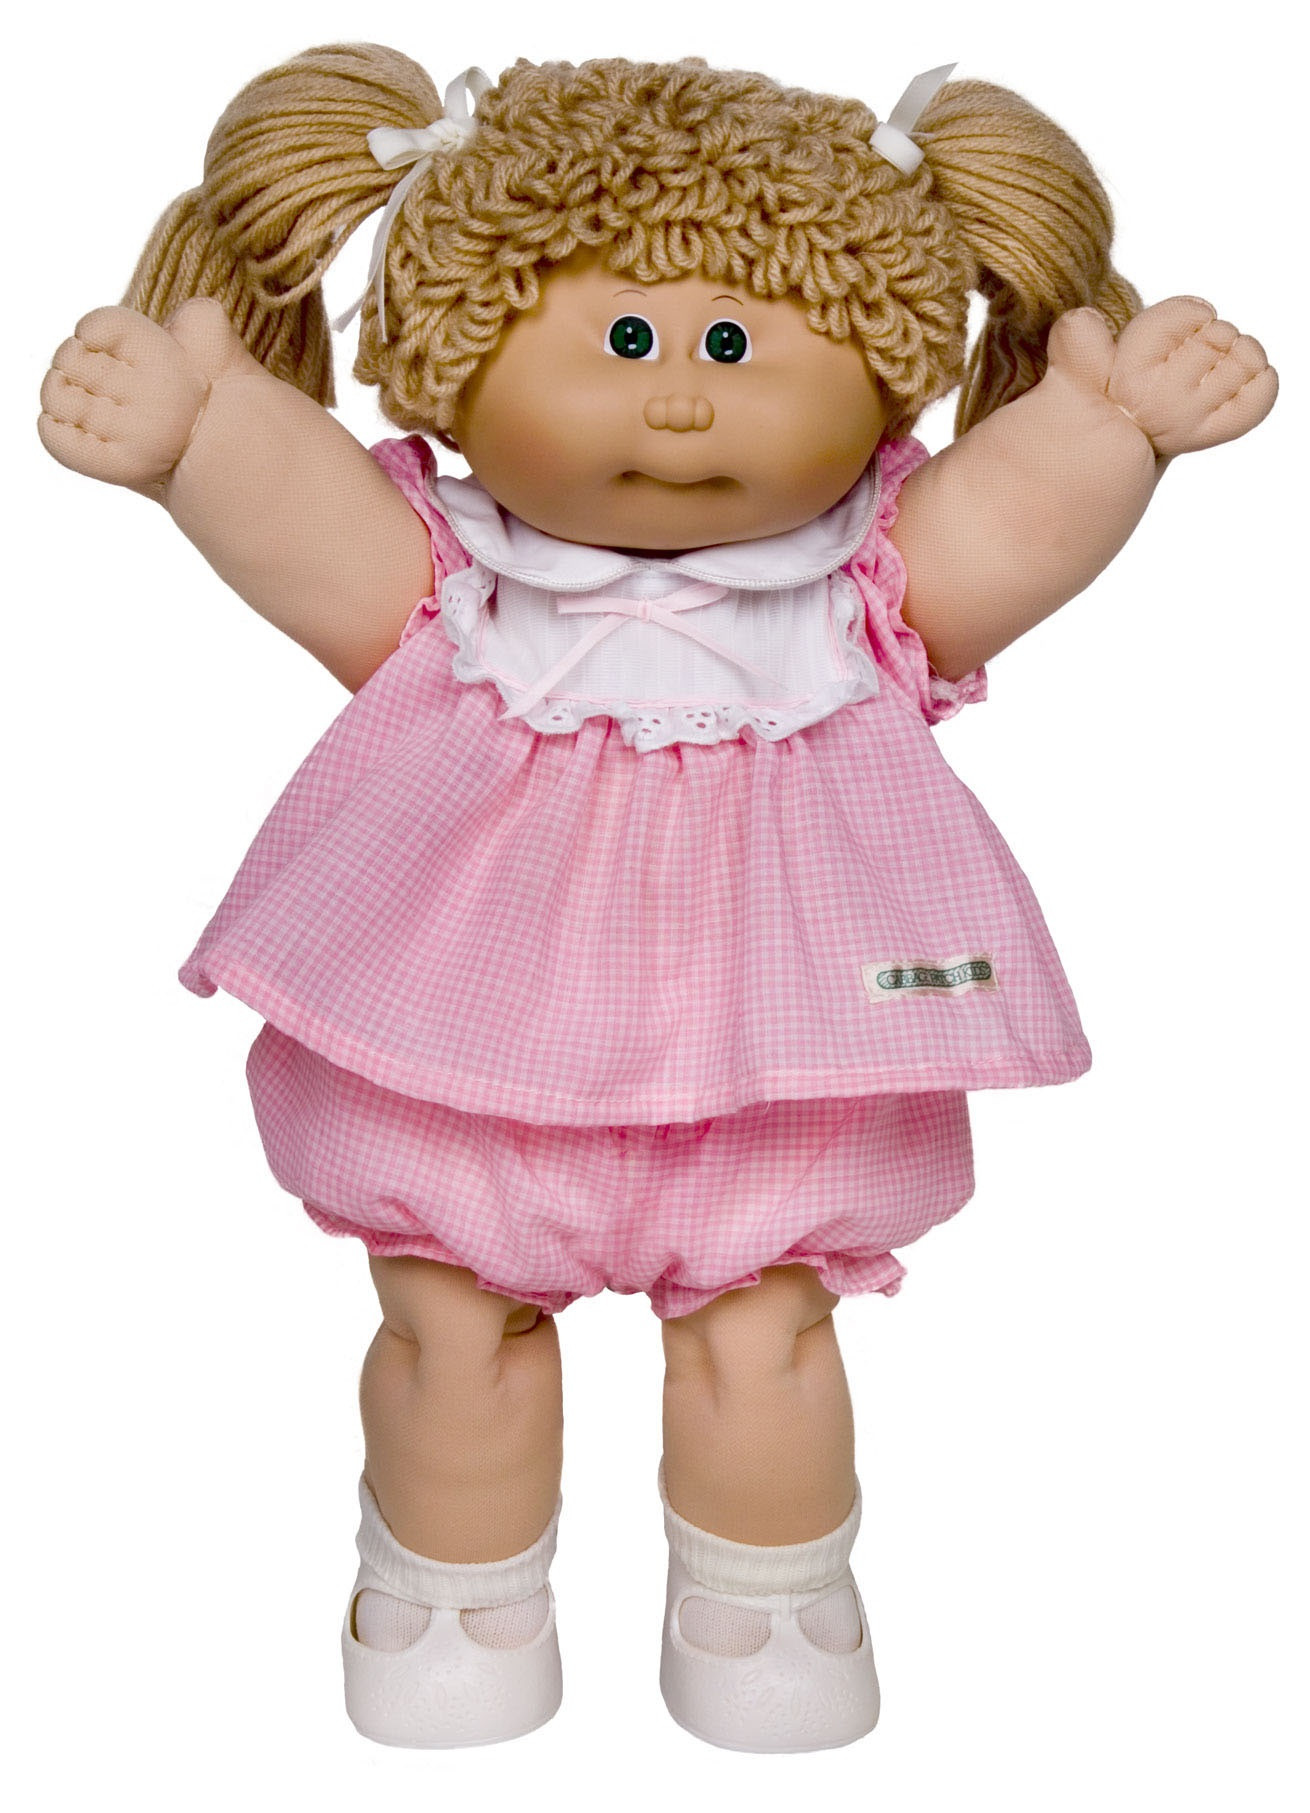 New 10 Christmas toys Through the Decades History Lists Old Cabbage Patch Doll Of Wonderful 47 Ideas Old Cabbage Patch Doll